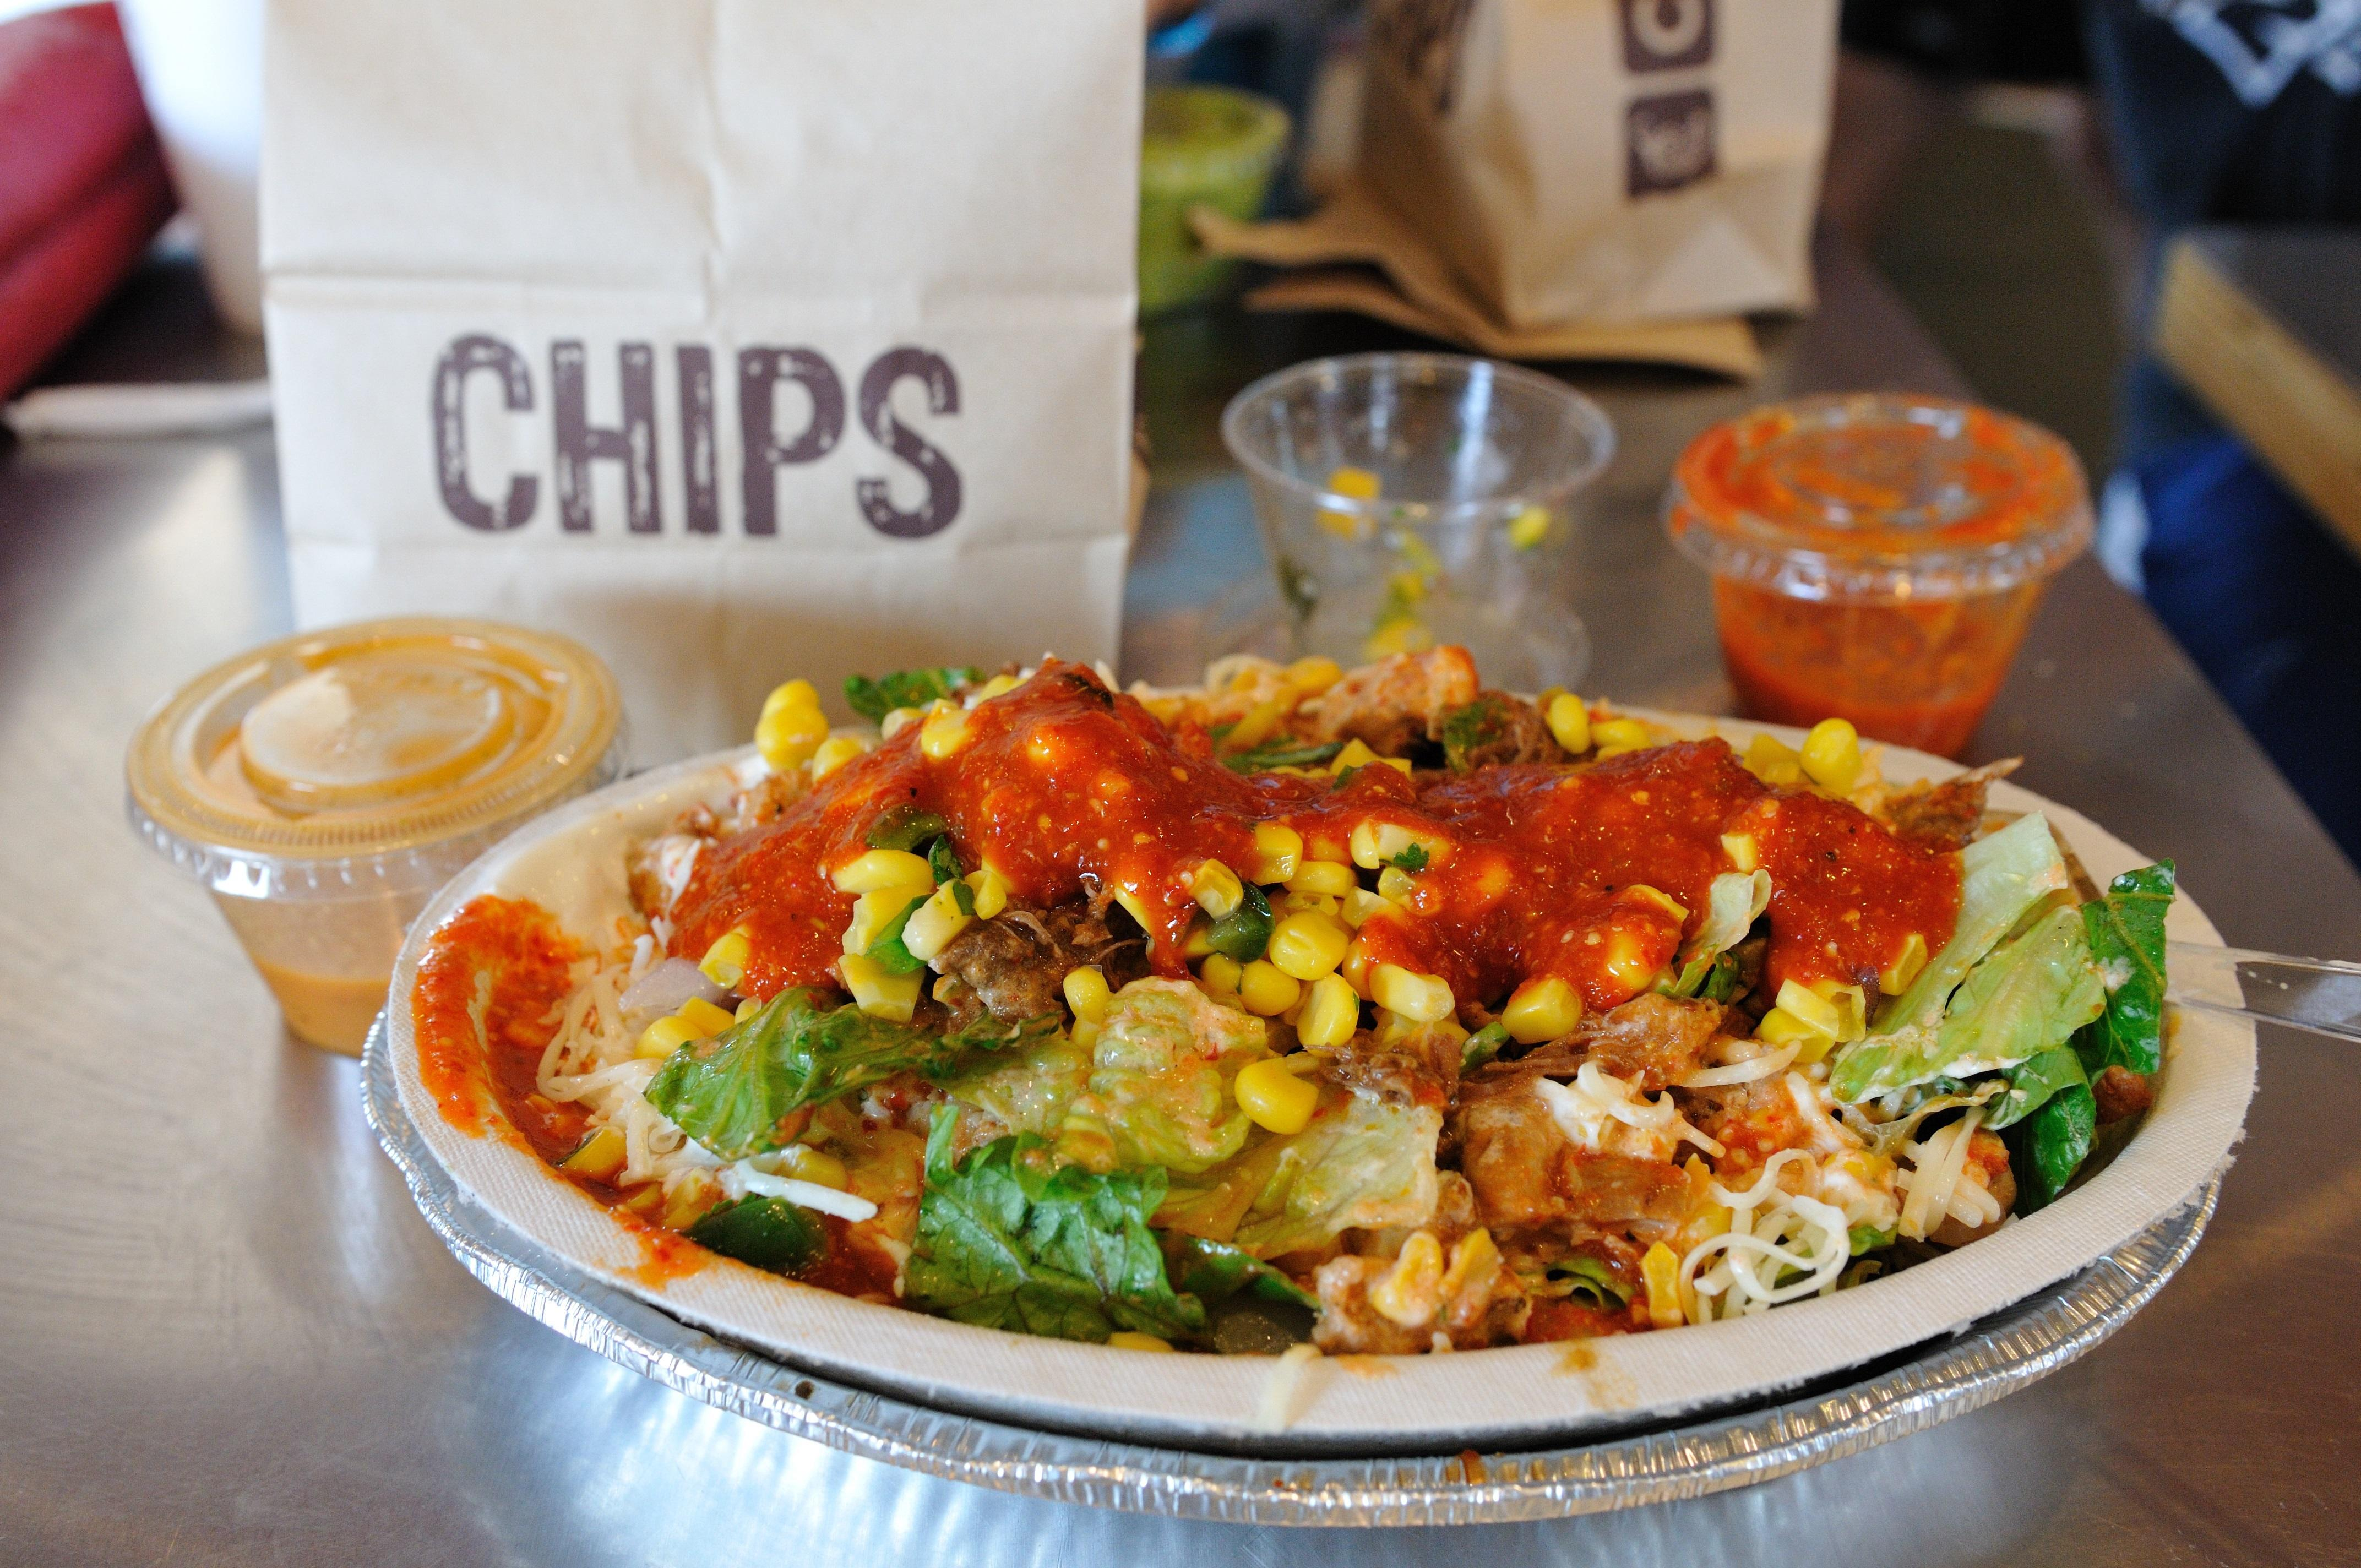 how to learn to code image of a burrito bowl at chipotle